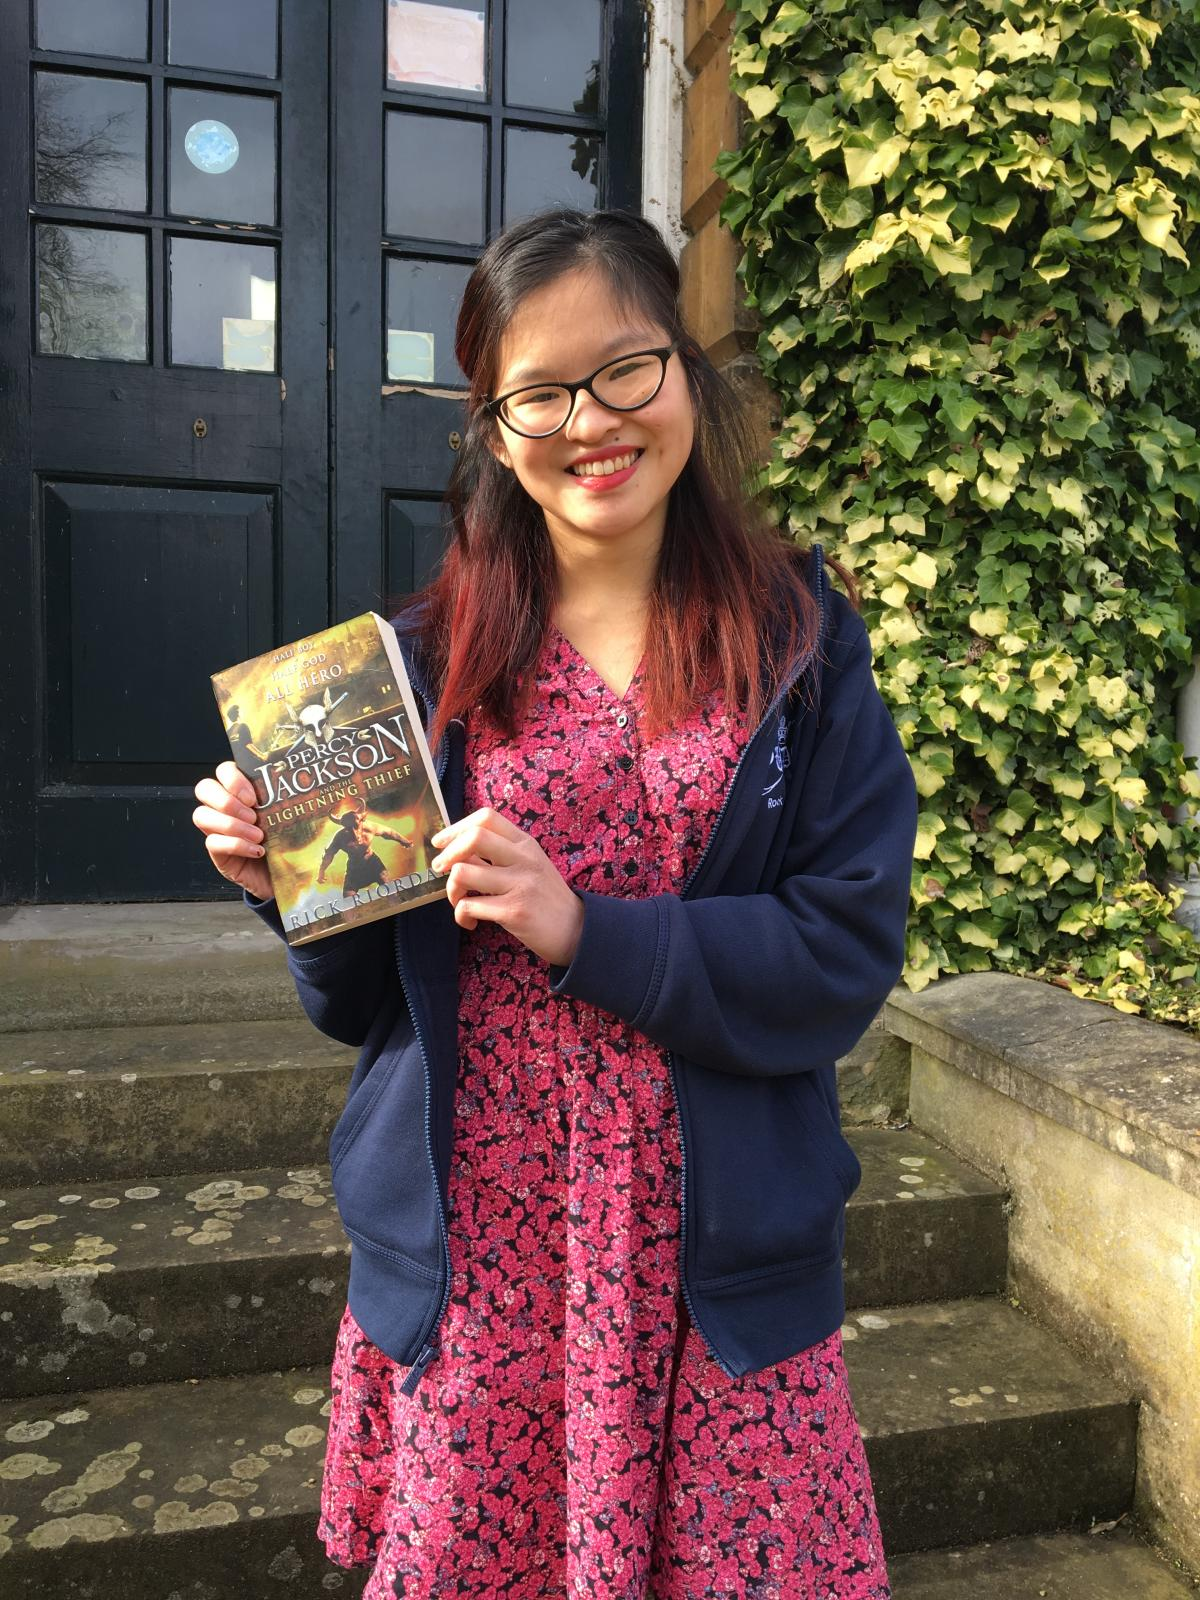 Our undergraduate student Nina with her book suggestion for World Book Day